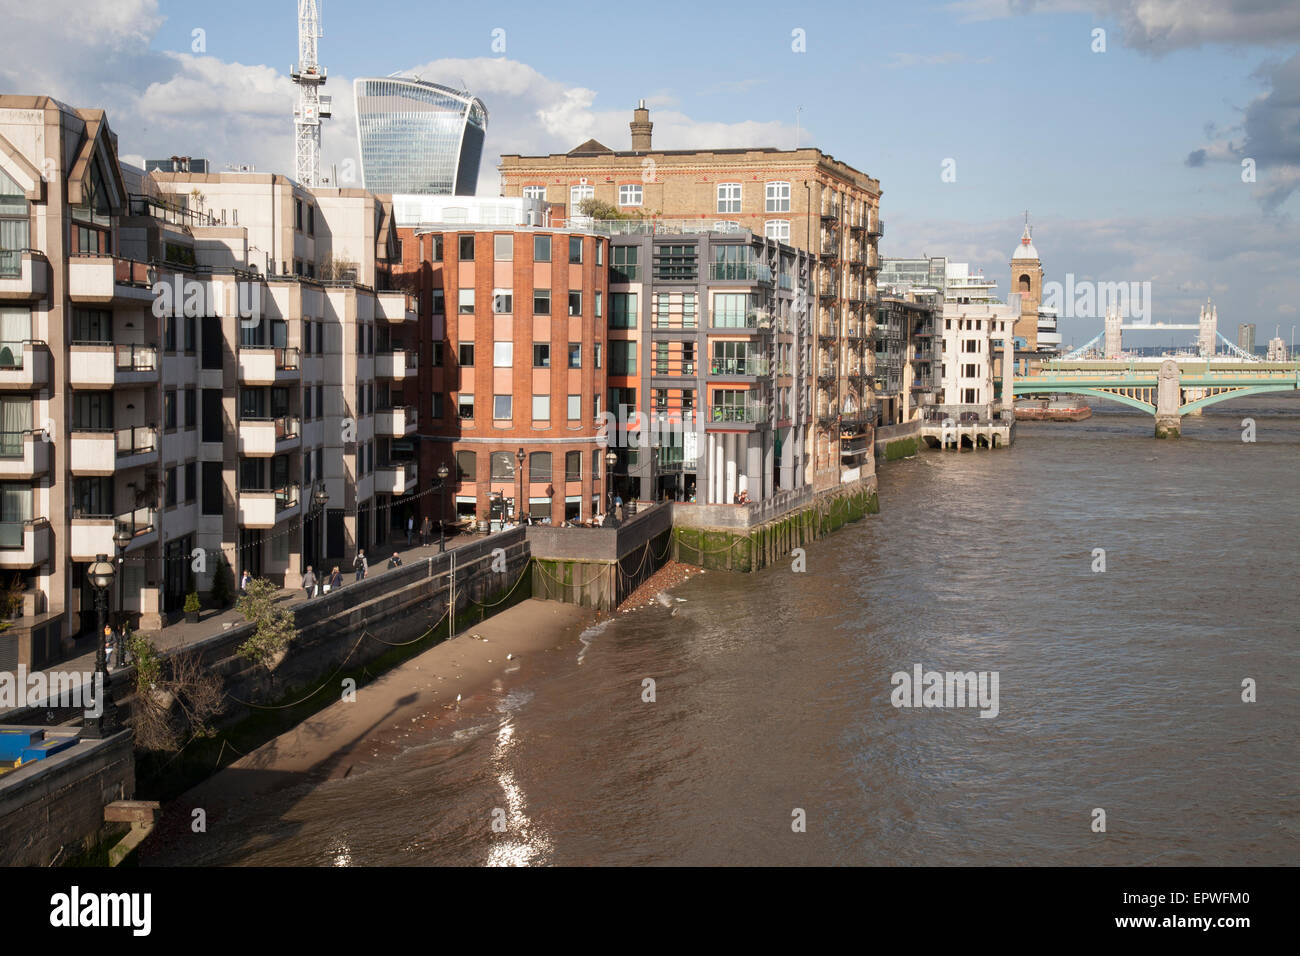 A view of riverside buildings on the banks of the River Thames in London, England. - Stock Image